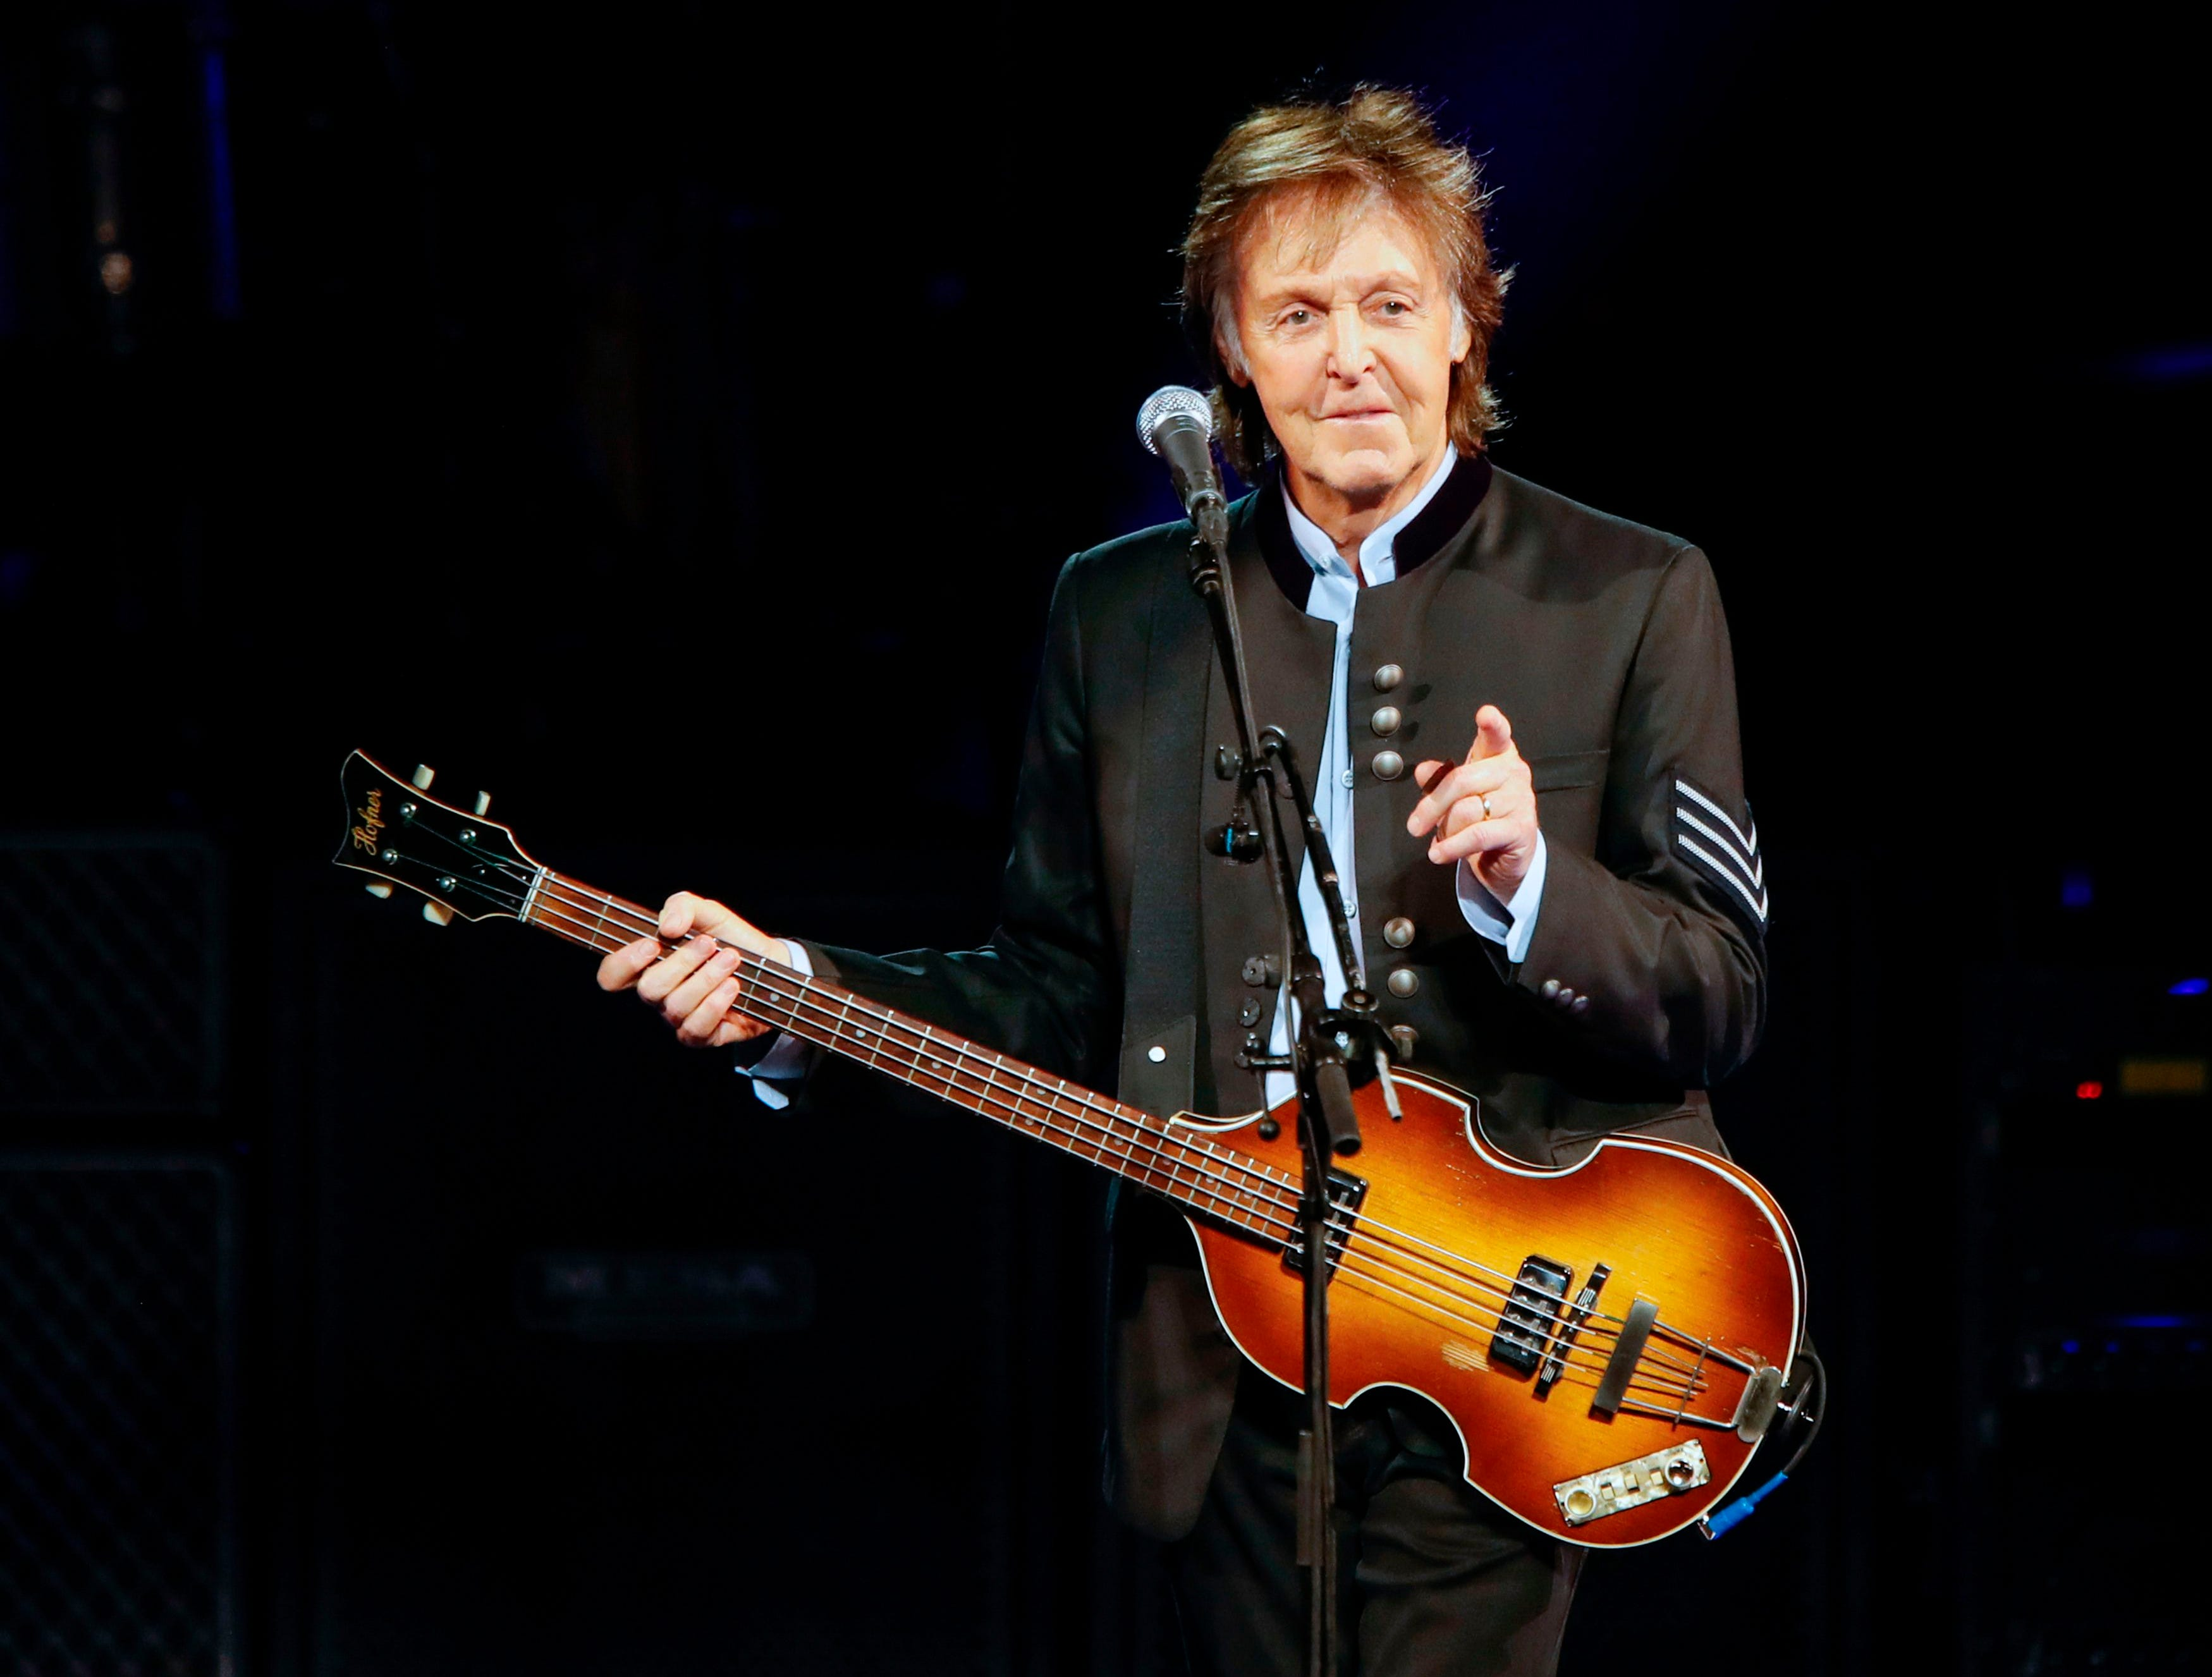 Sir Paul McCartney performs during his One on One tour at Hollywood Casino Amphitheatre in Tinley Park, Illinois, in July 2017. McCartney was back on the top of the charts on Sept. 16, 2018, earning his first solo No. 1 album in the United States in 36 years.